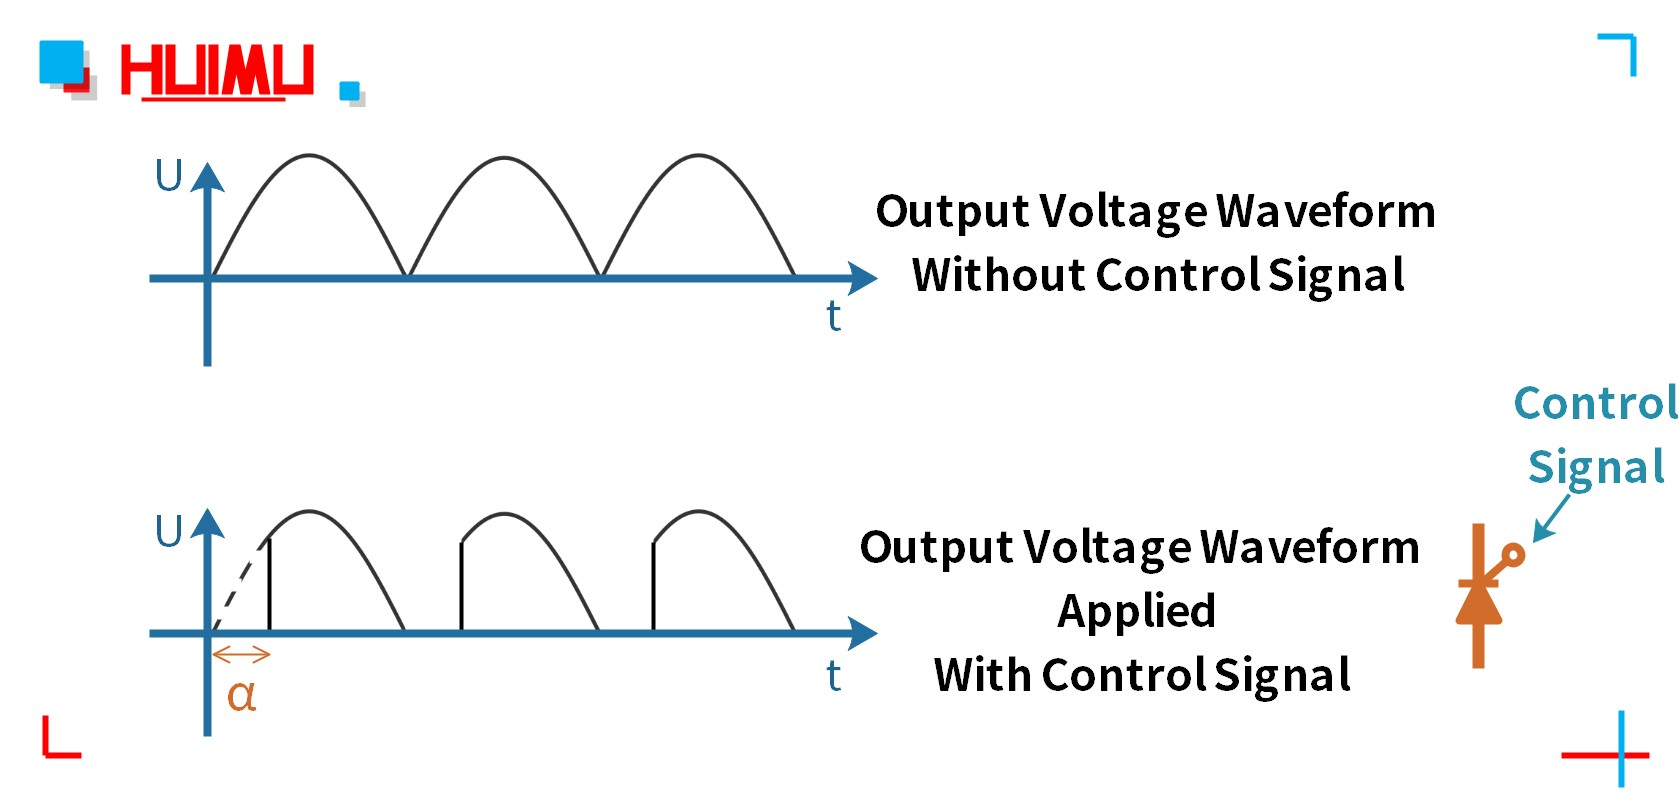 The output voltage waveform of MGR-DT series fully controlled full bridge rectification module